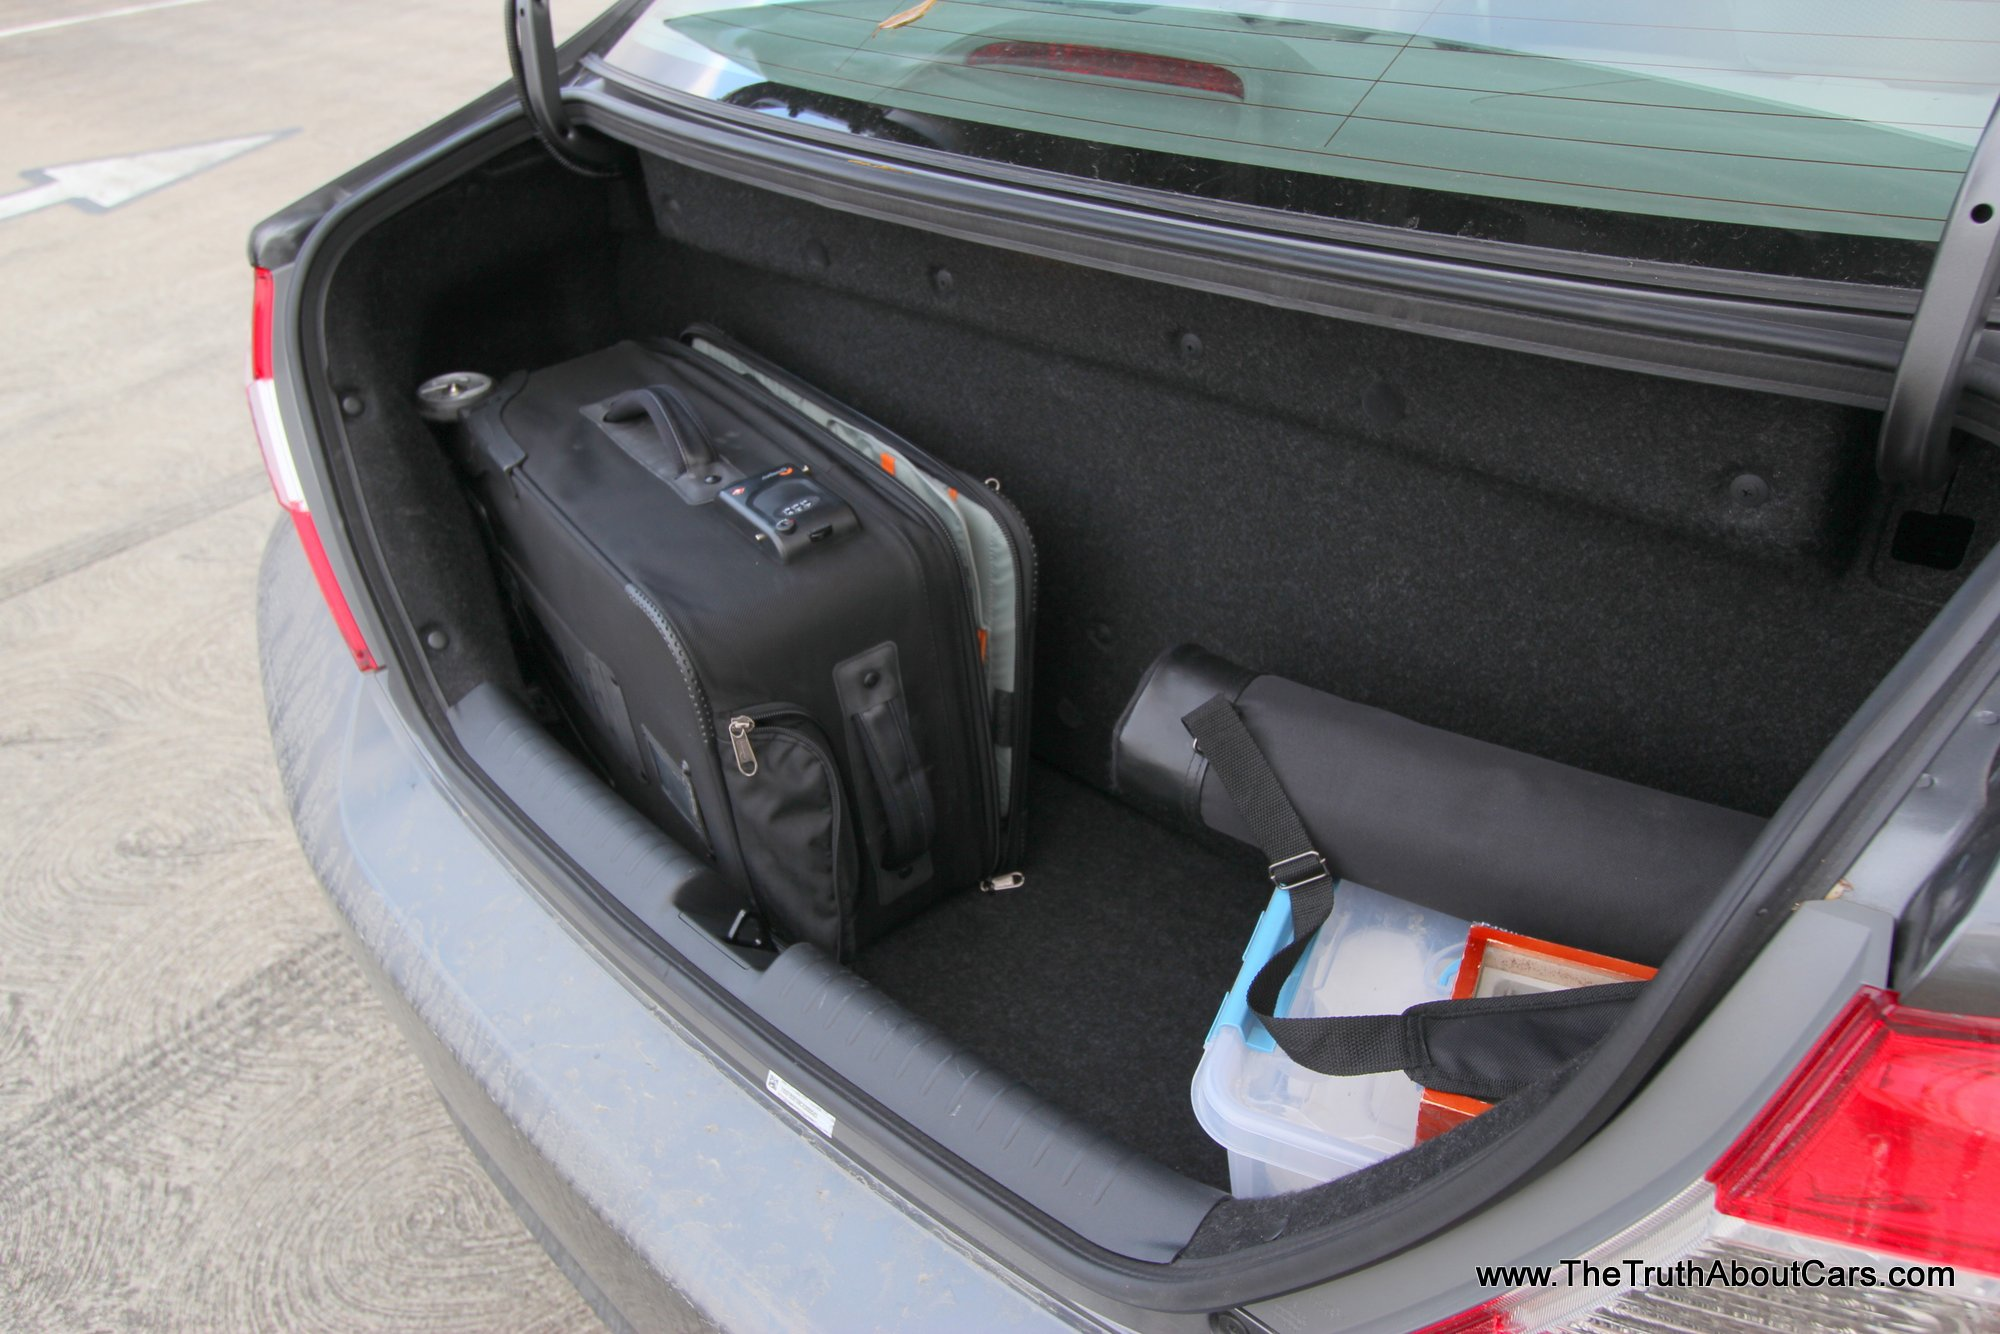 Review: 2012 Honda Civic Natural Gas - The Truth About Cars